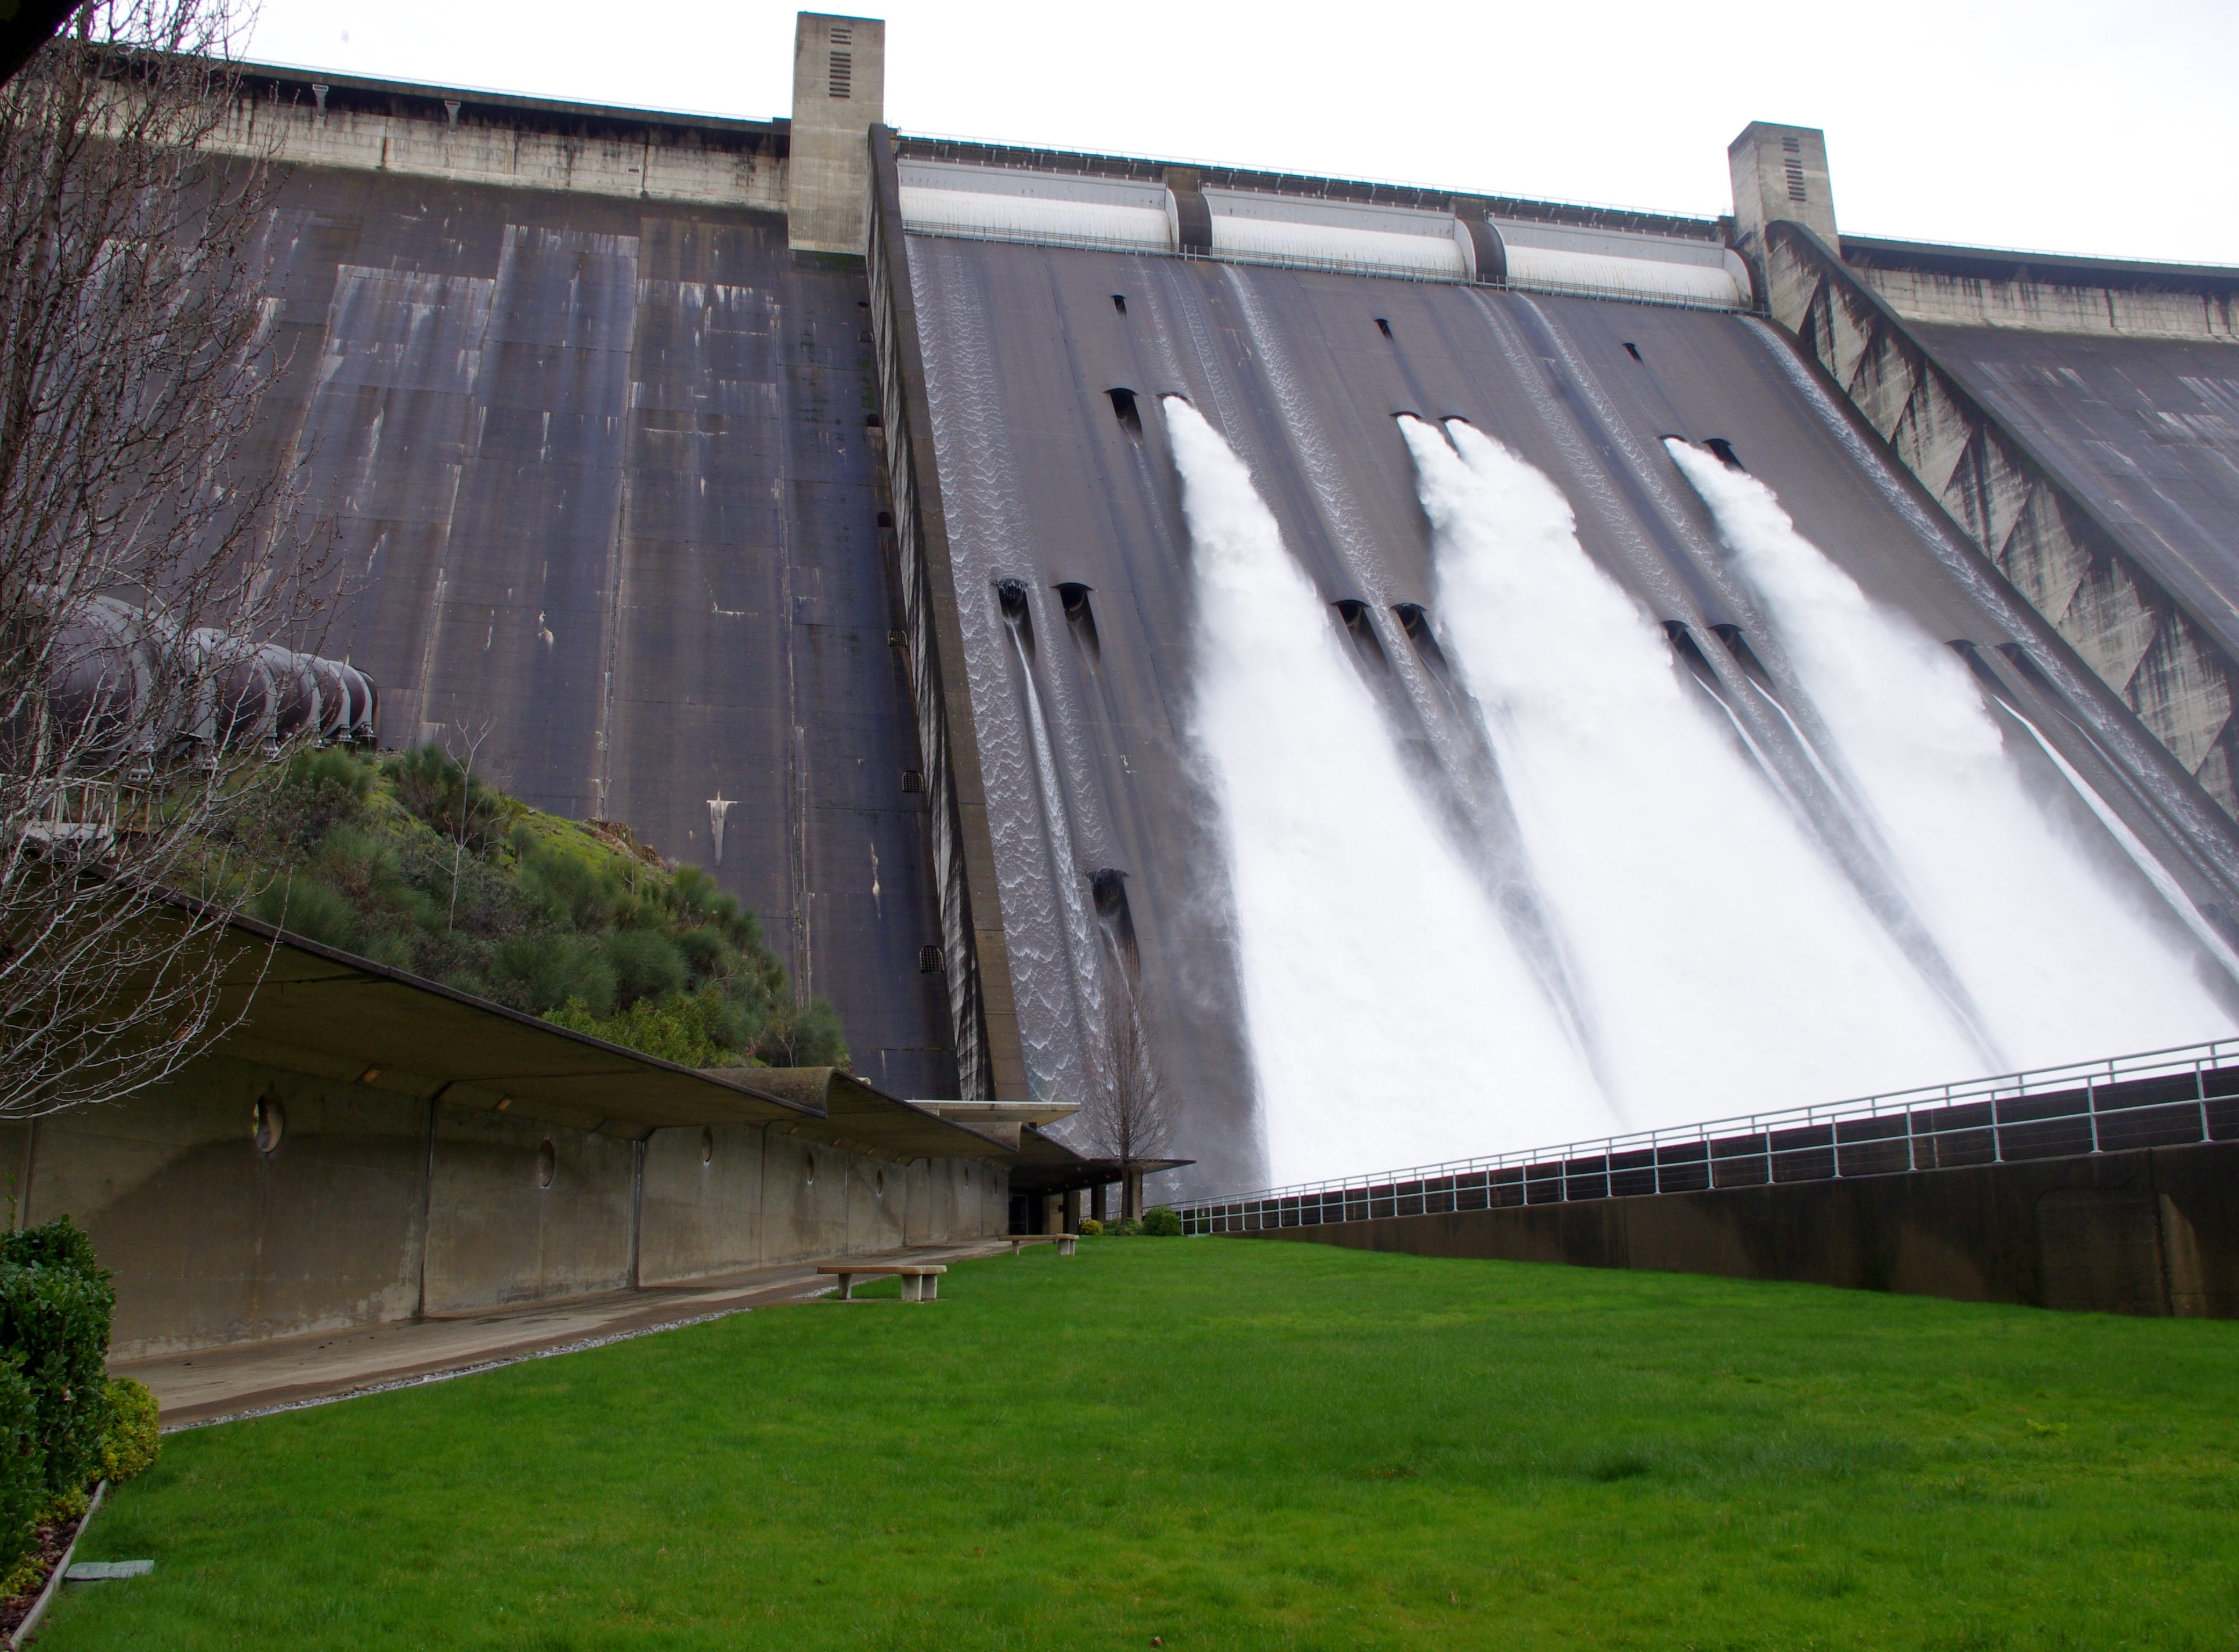 The Bureau of Reclamation has increased the amount of water coming out of the dam to 30,000 cubic-feet per second.